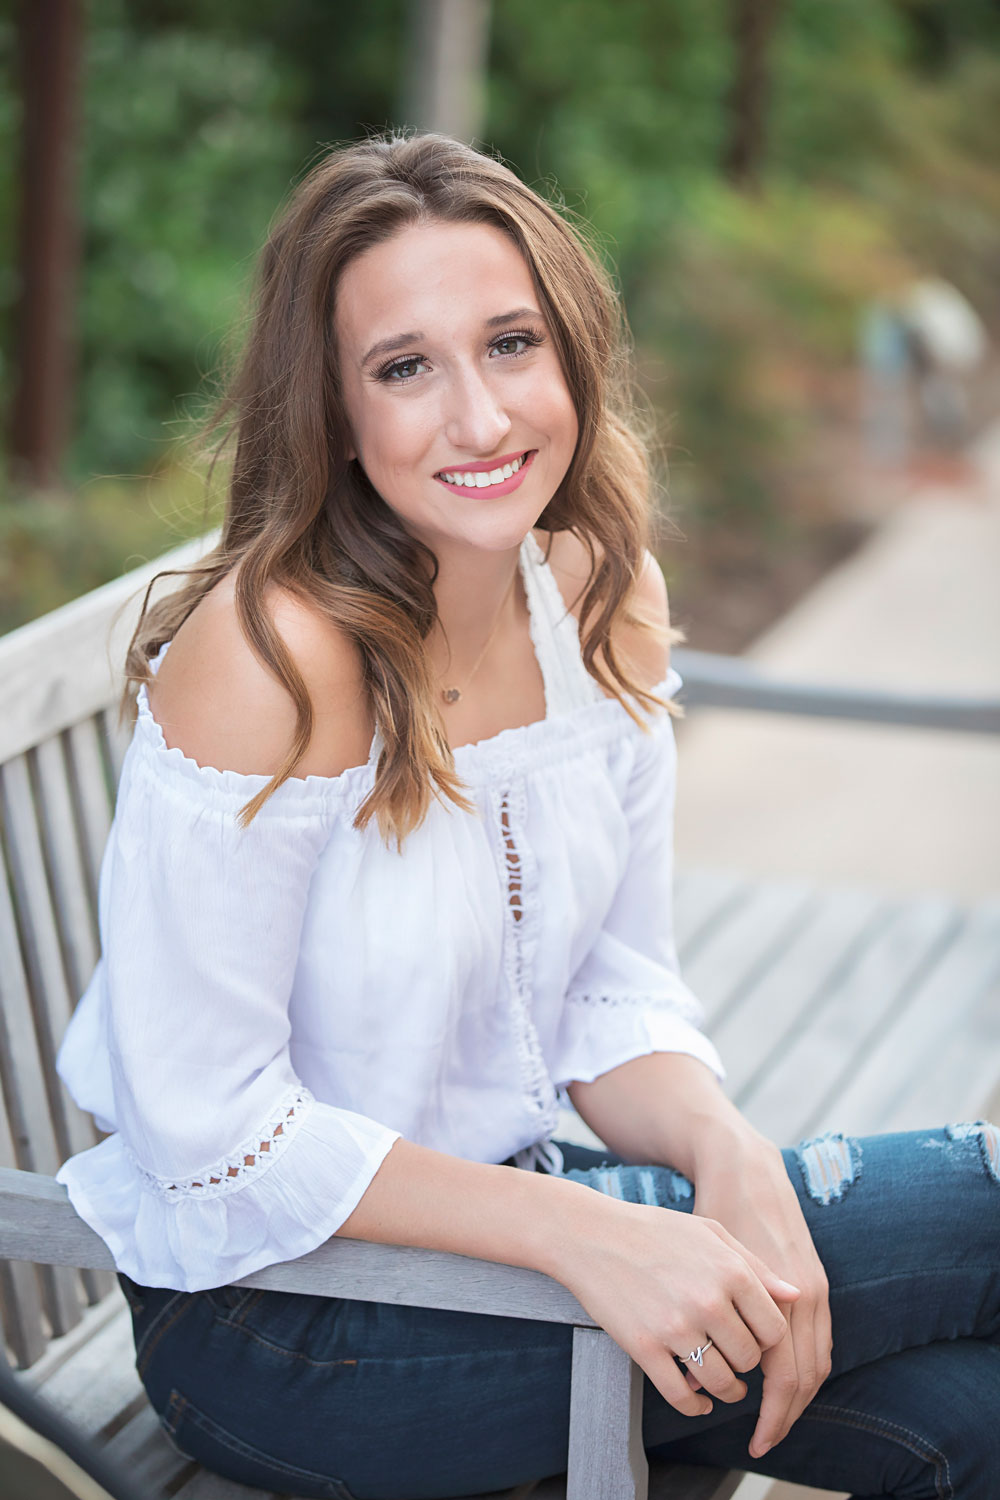 Senior girl wearing white shirt and blue jeans sitting on a bench at the Ambassador Hotel in Midtown Oklahoma City.